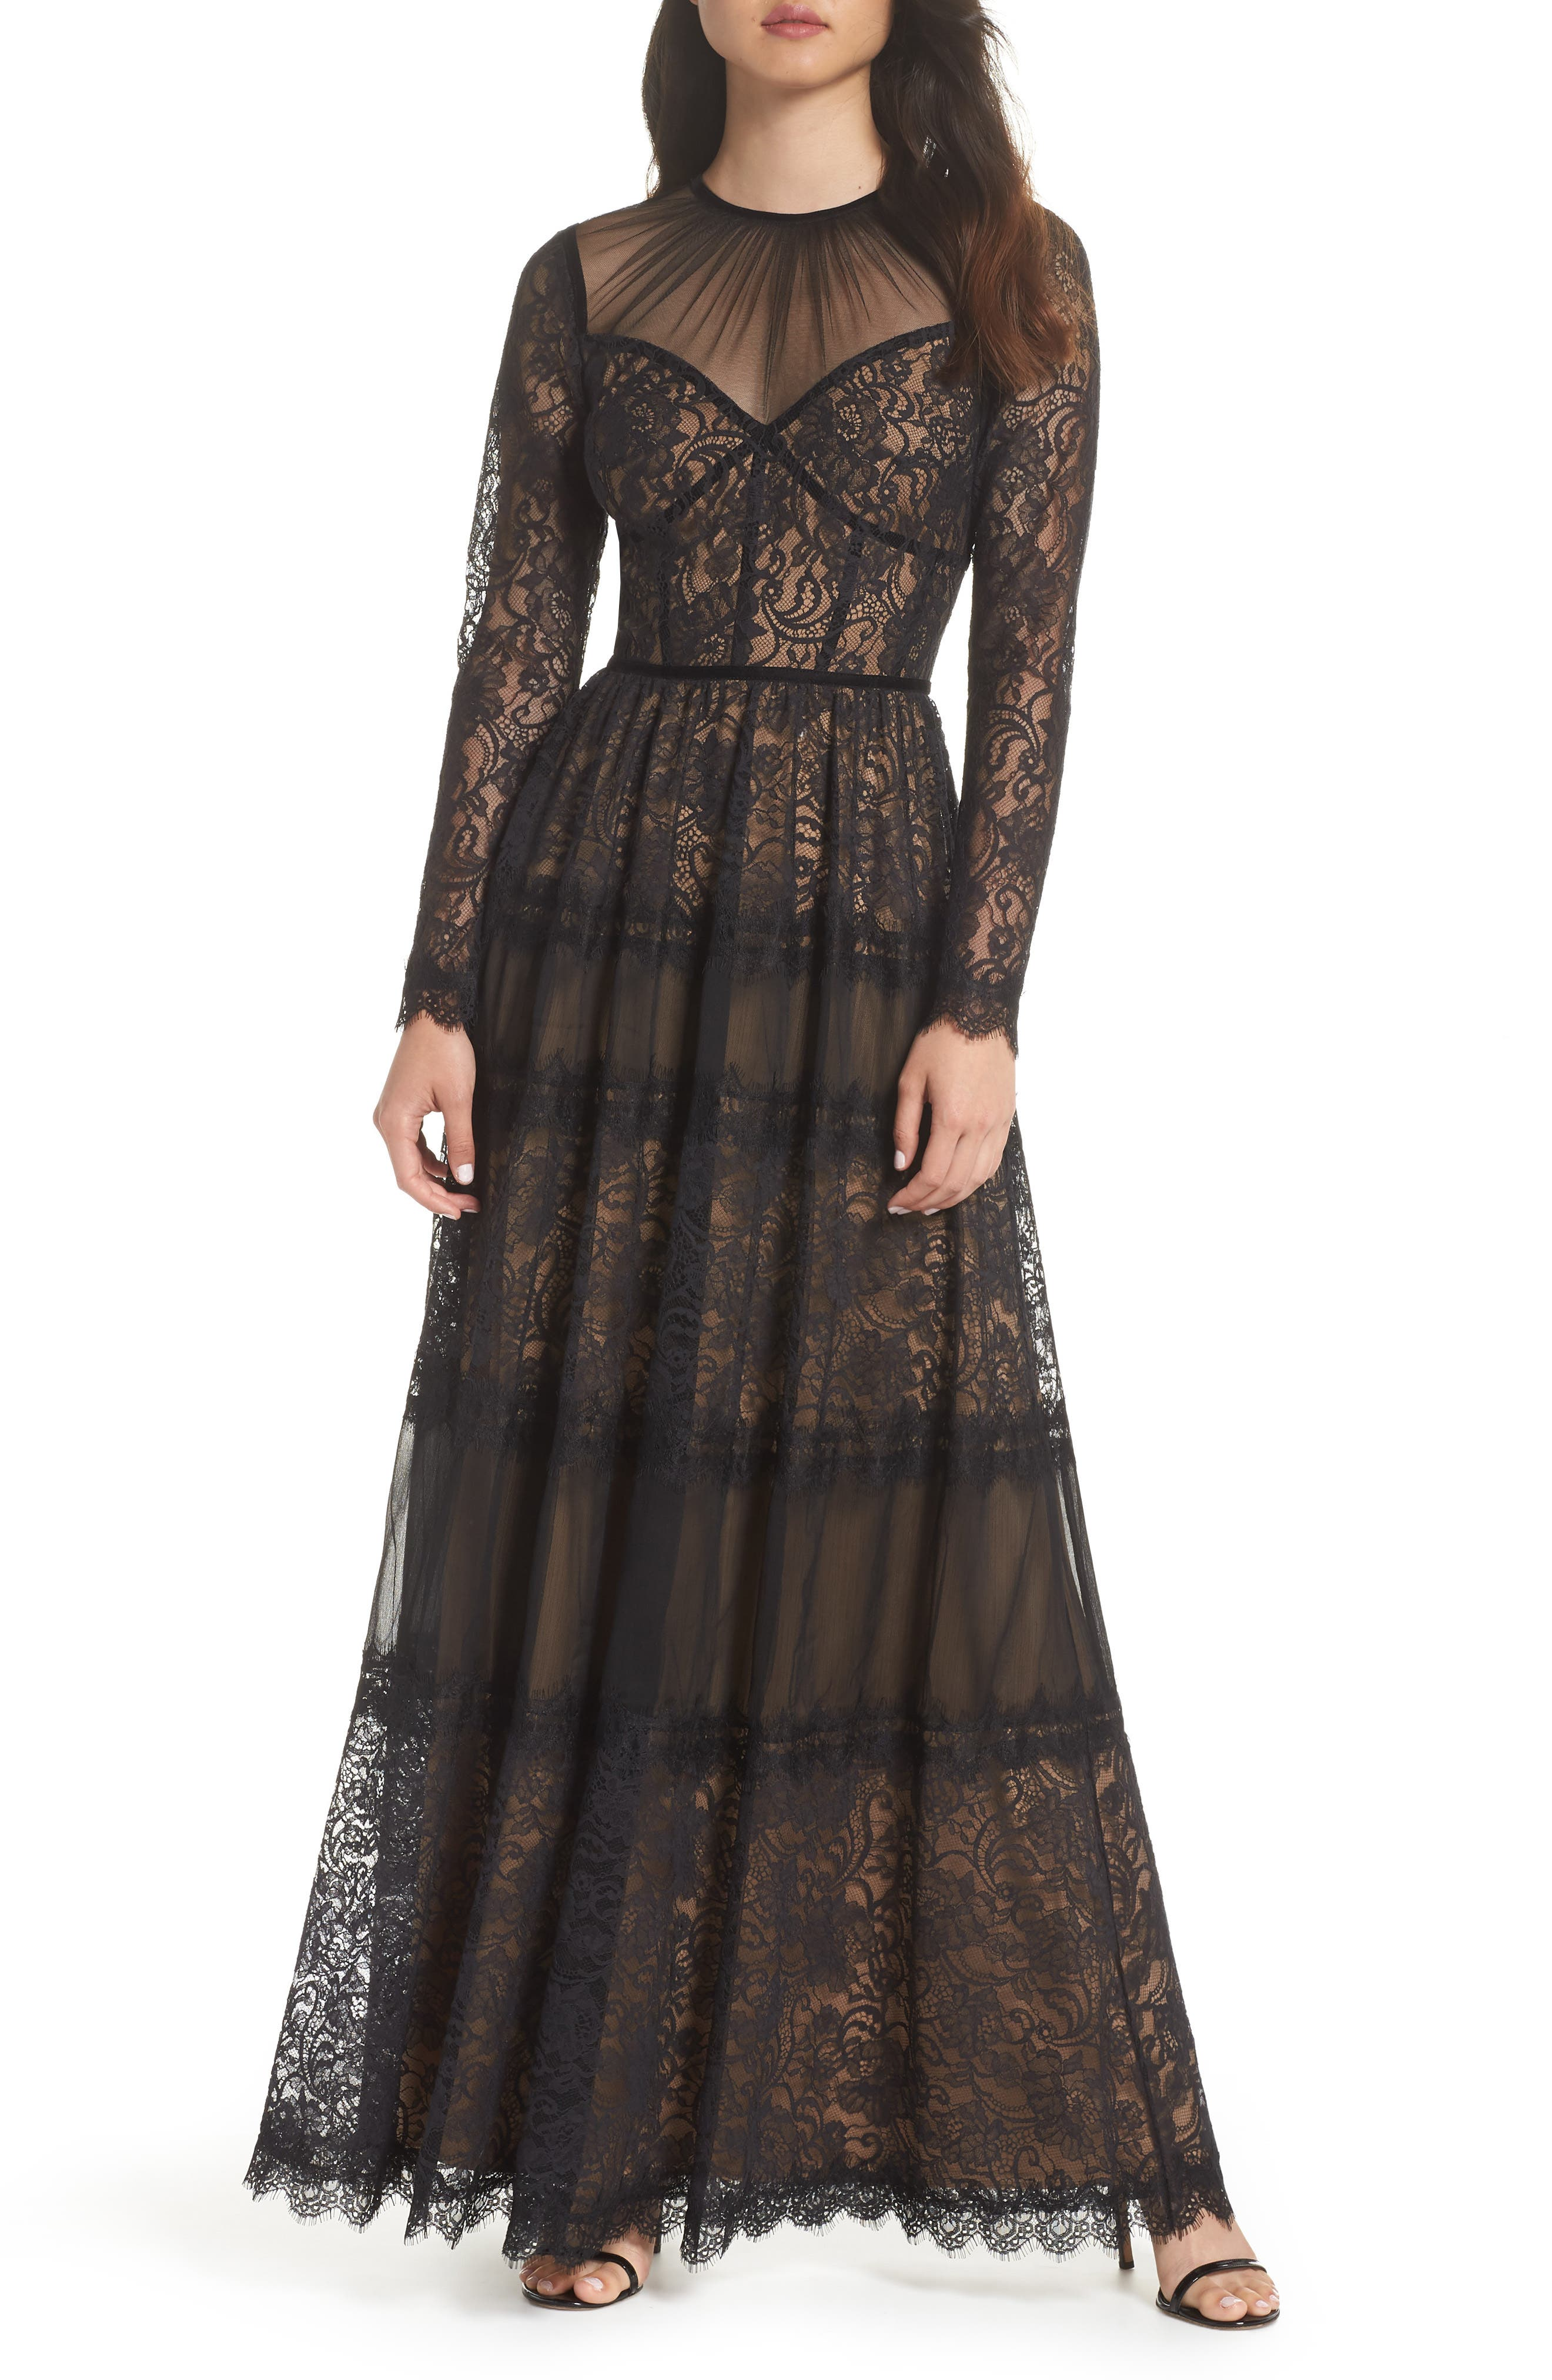 Victorian Dresses | Victorian Ballgowns | Victorian Clothing Womens Tadashi Shoji Lace Gown $688.00 AT vintagedancer.com